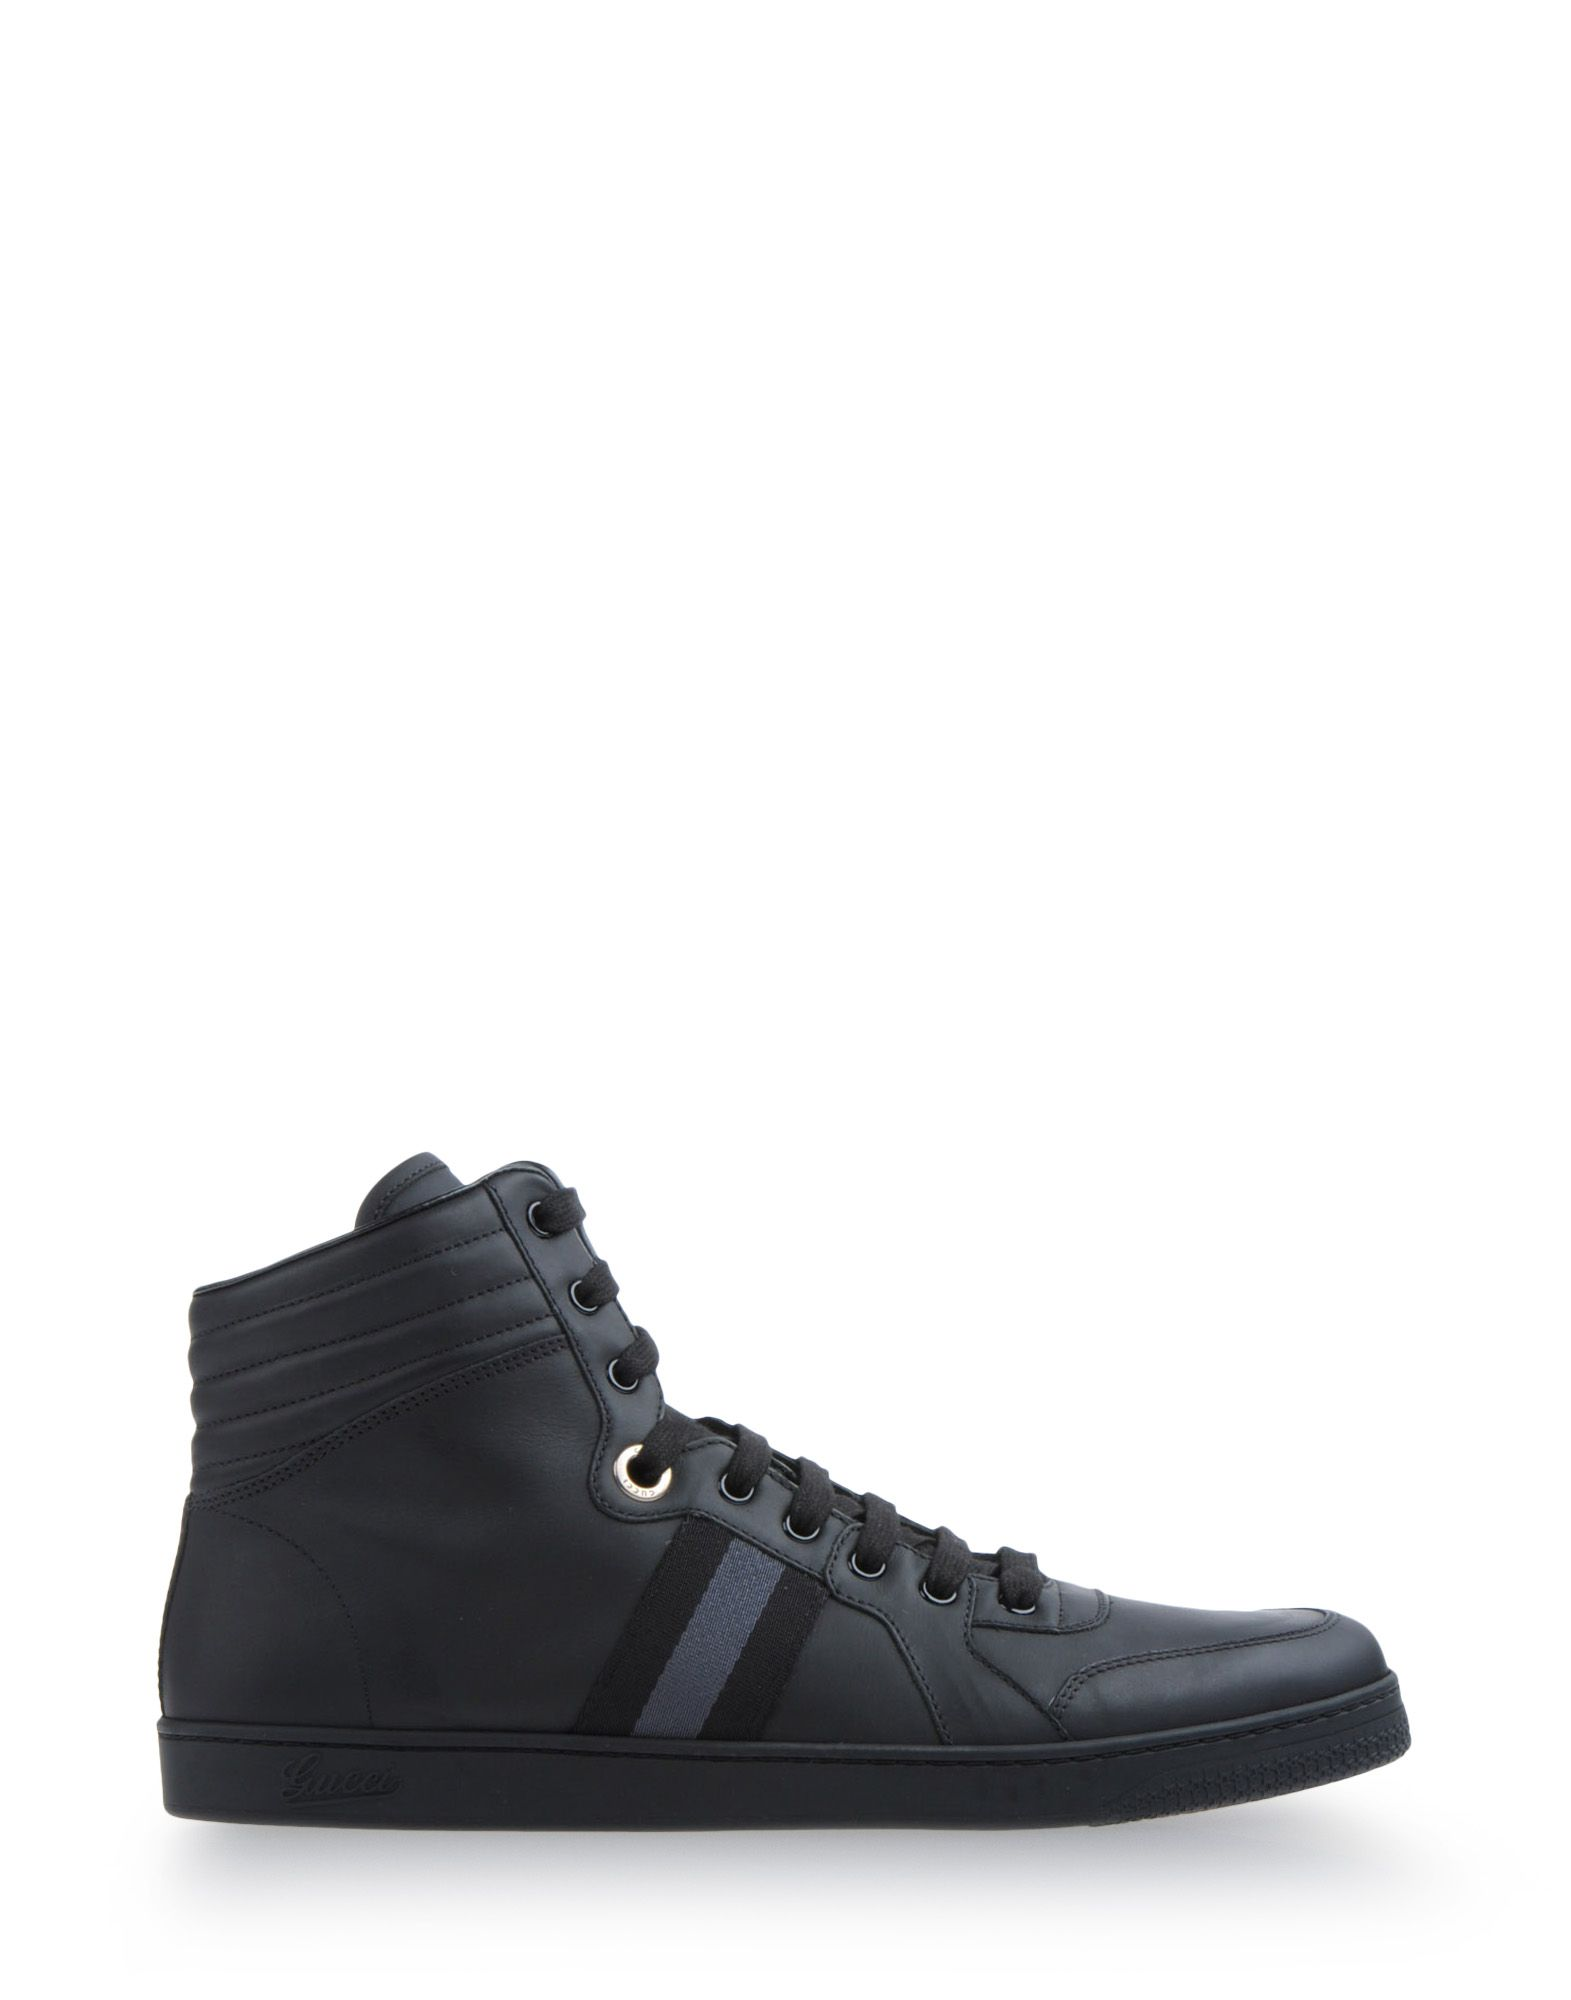 gucci high top sneakers in black for men lyst. Black Bedroom Furniture Sets. Home Design Ideas